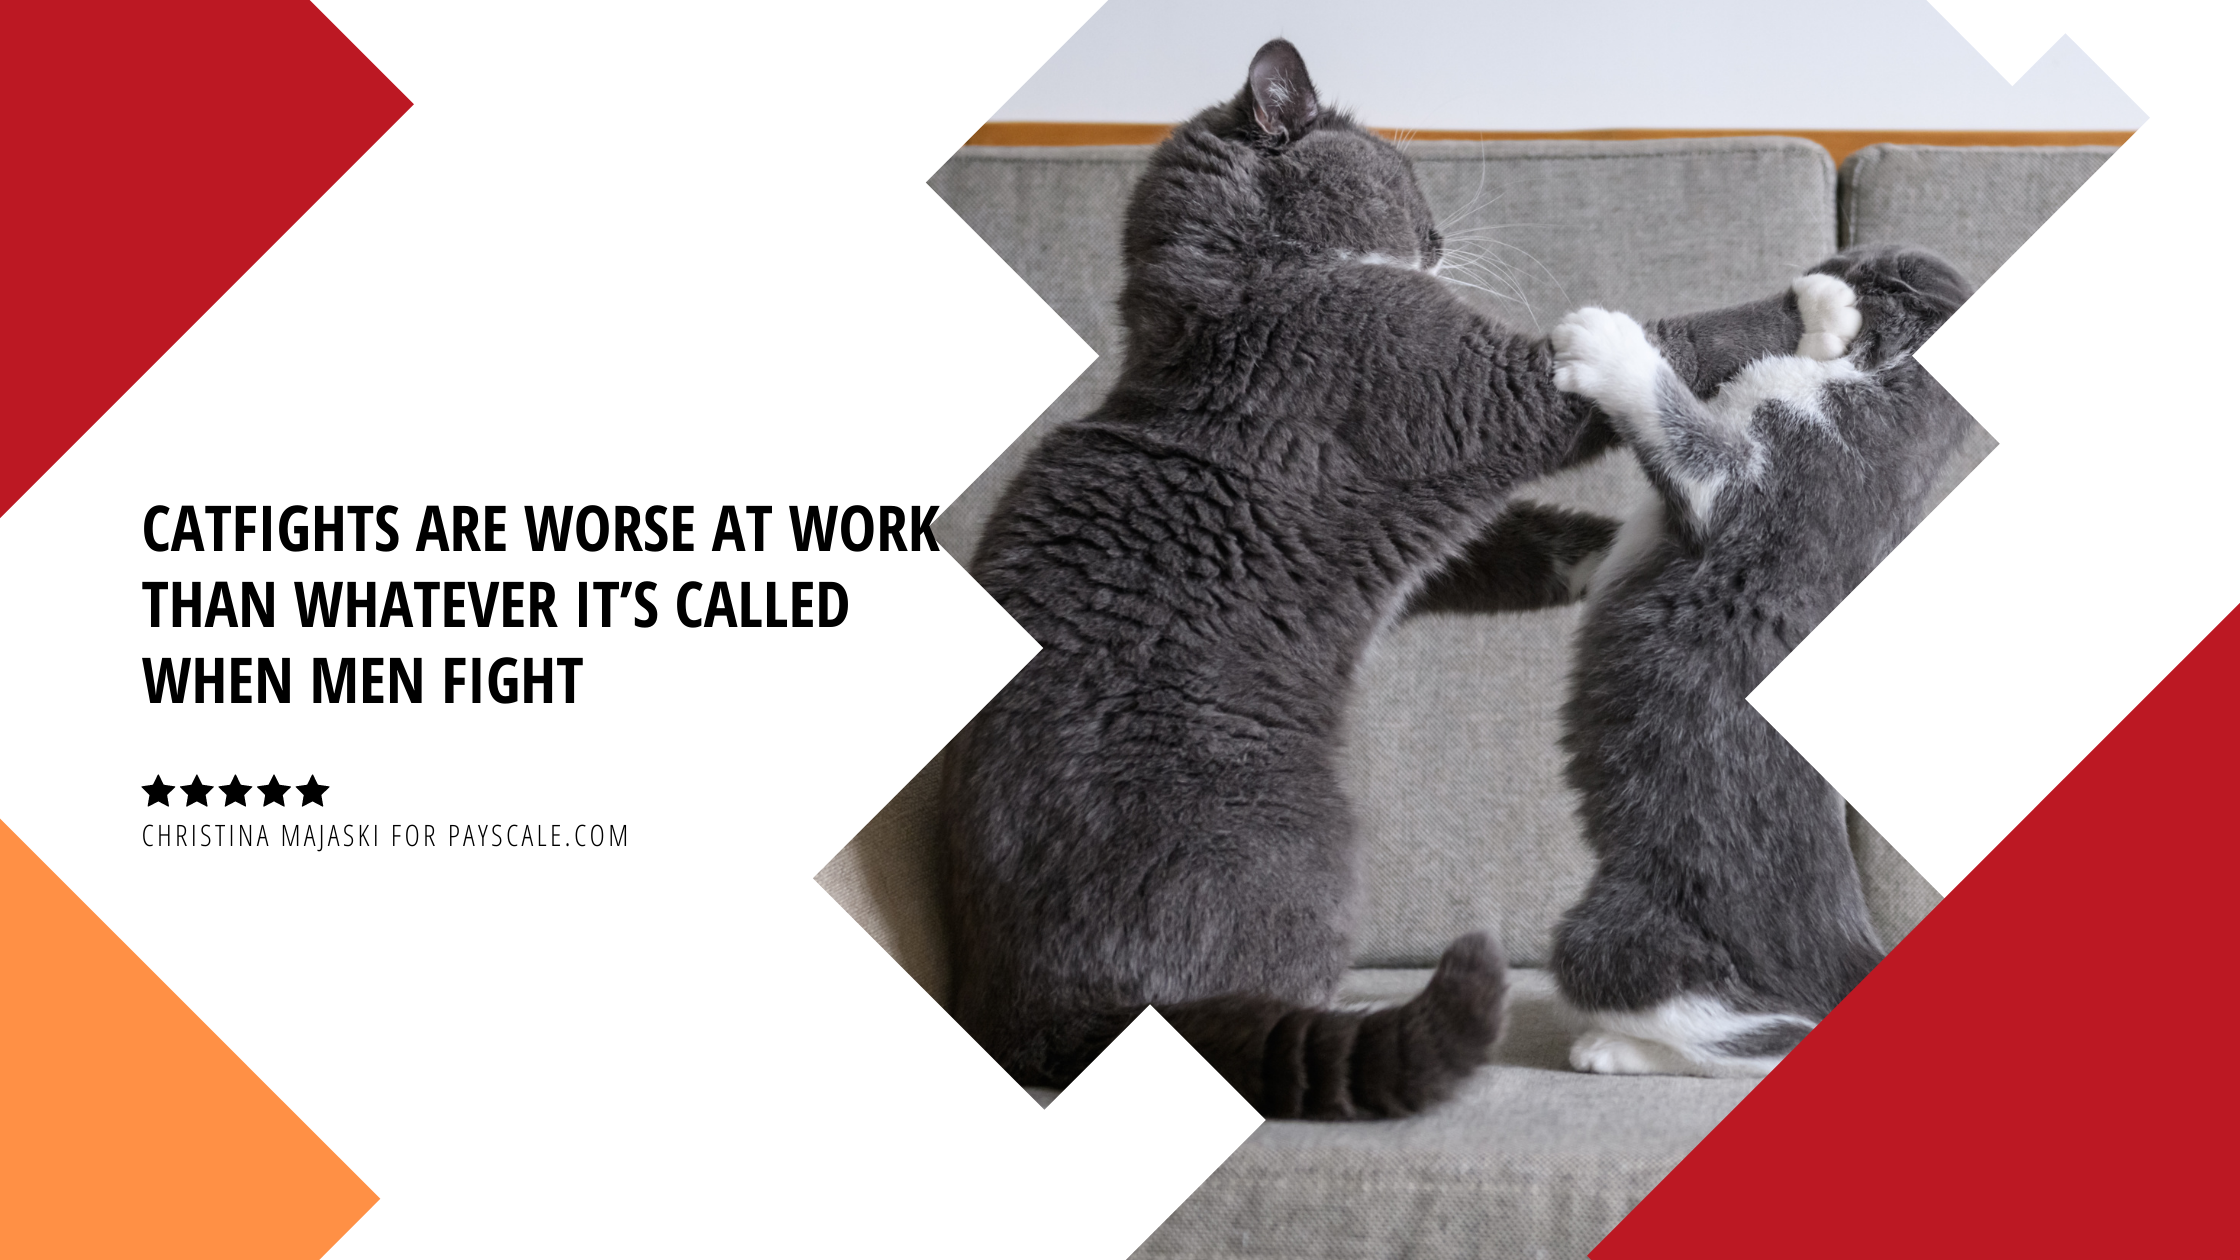 CATFIGHTS ARE WORSE AT WORK THAN WHATEVER IT'S CALLED WHEN MEN FIGHT